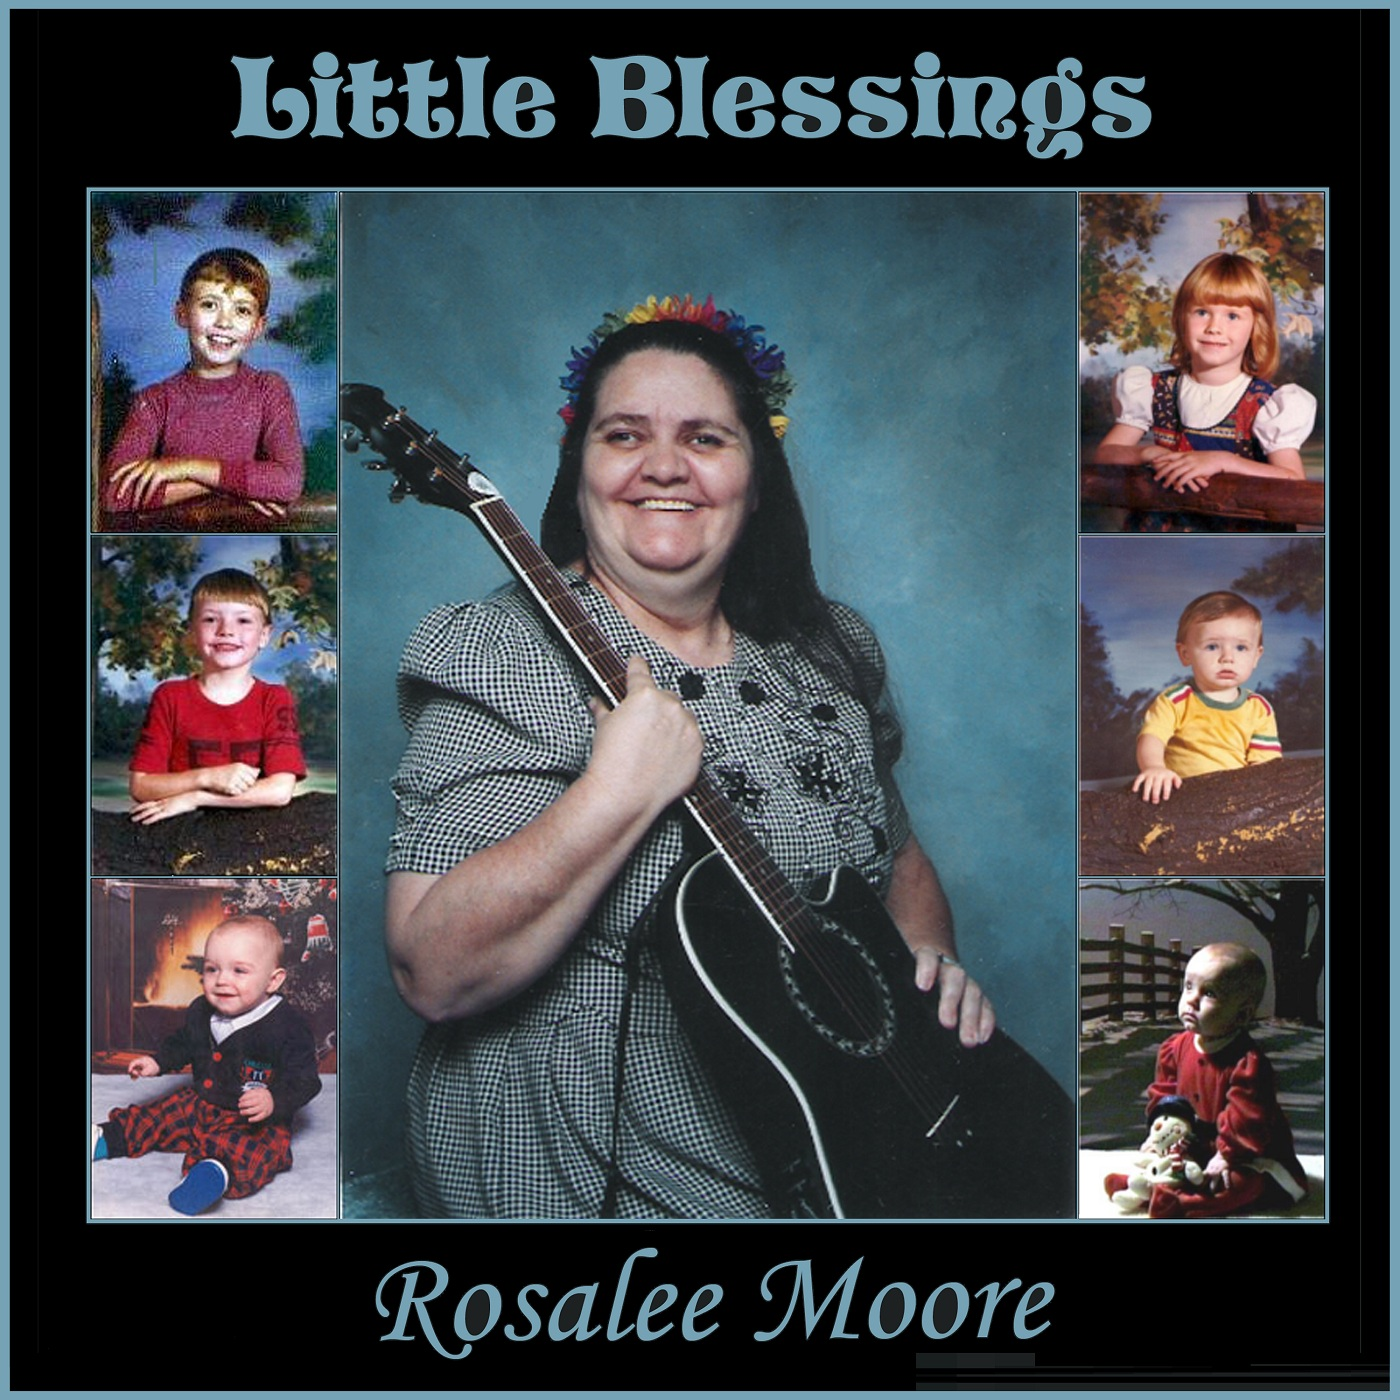 Little Blessings Cover by Rosalee Moore